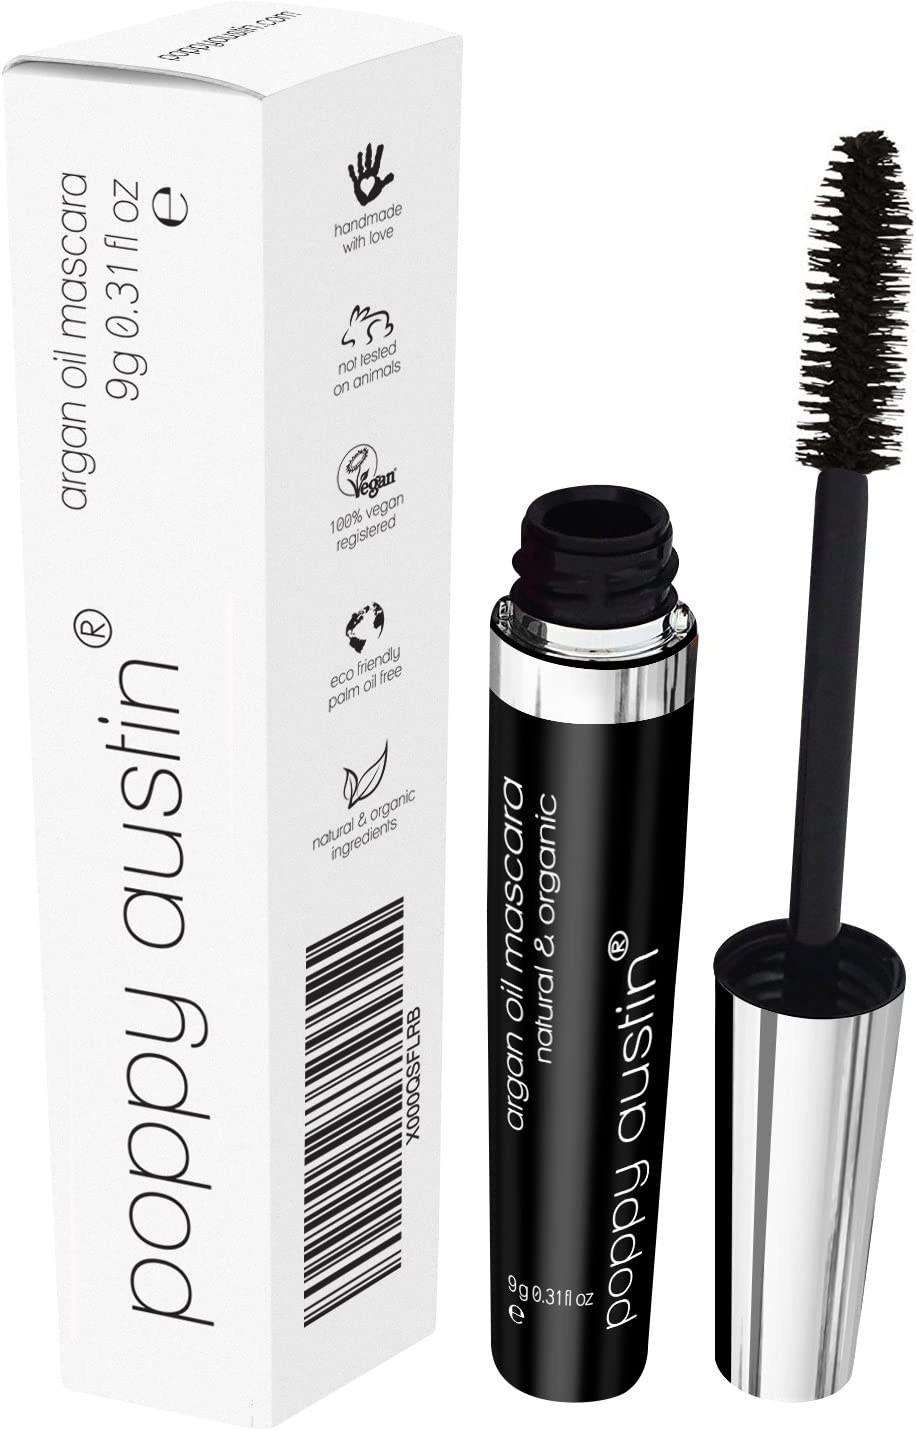 FINEST Vegan & Organic Lengthening Mascara Black With Argan Oil - Cruelty-Free, Best Natural Volumising, Thickening, Smudge Proof, Hypoallergenic, Water Based - for Sensitive Eyes & Short Lashes